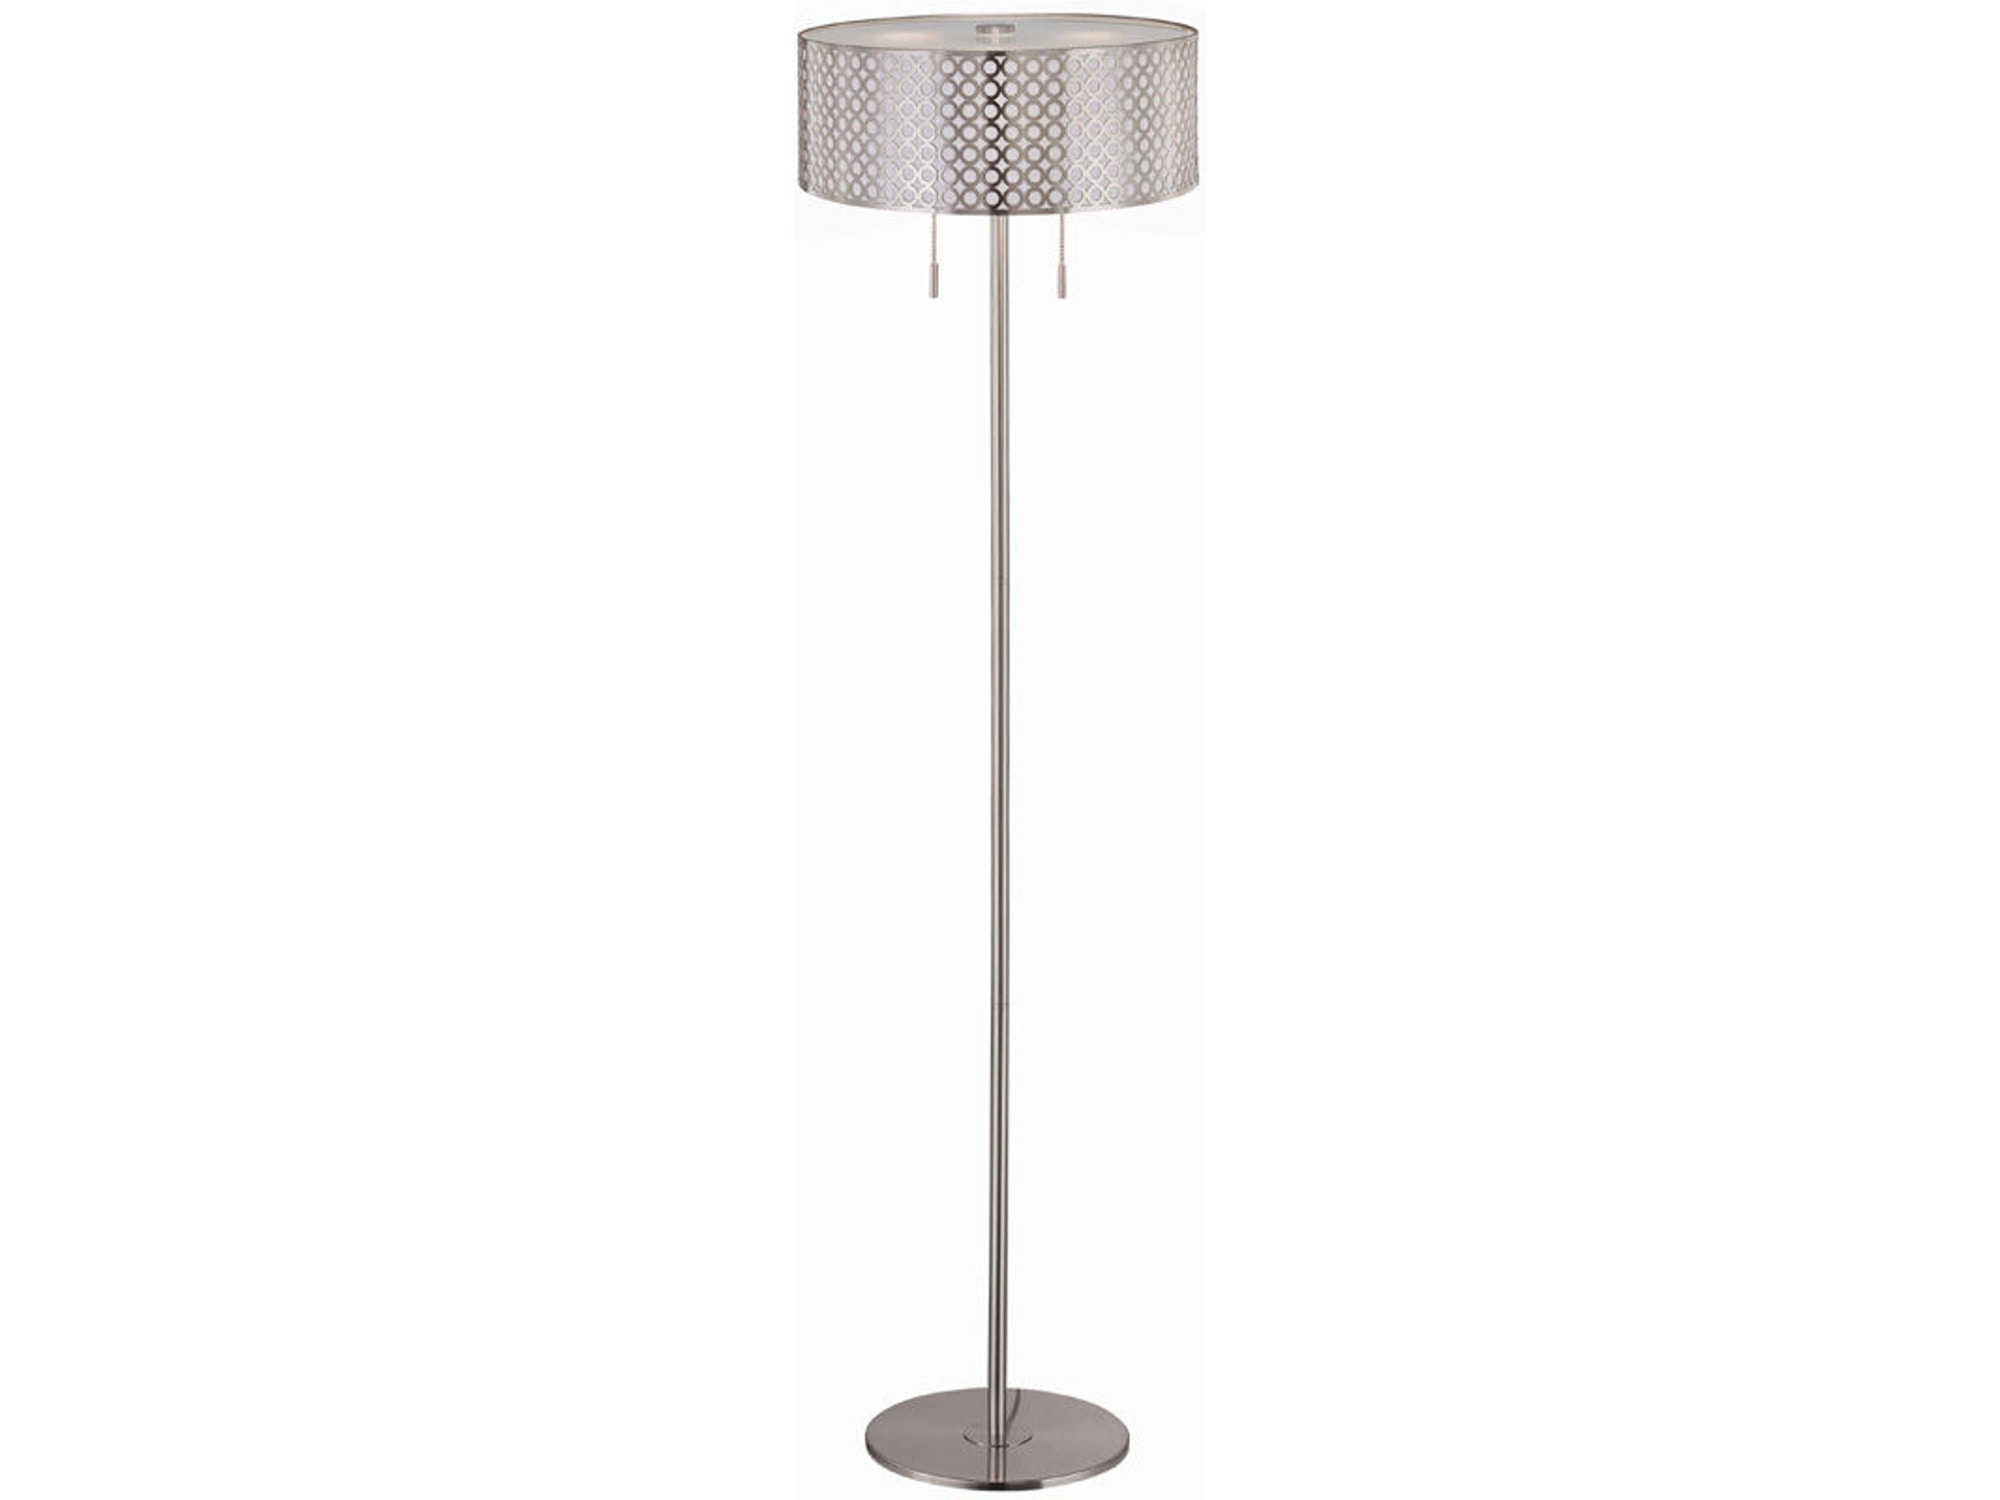 Metal Cut-Out Lined Shade Floor Lamp 101551